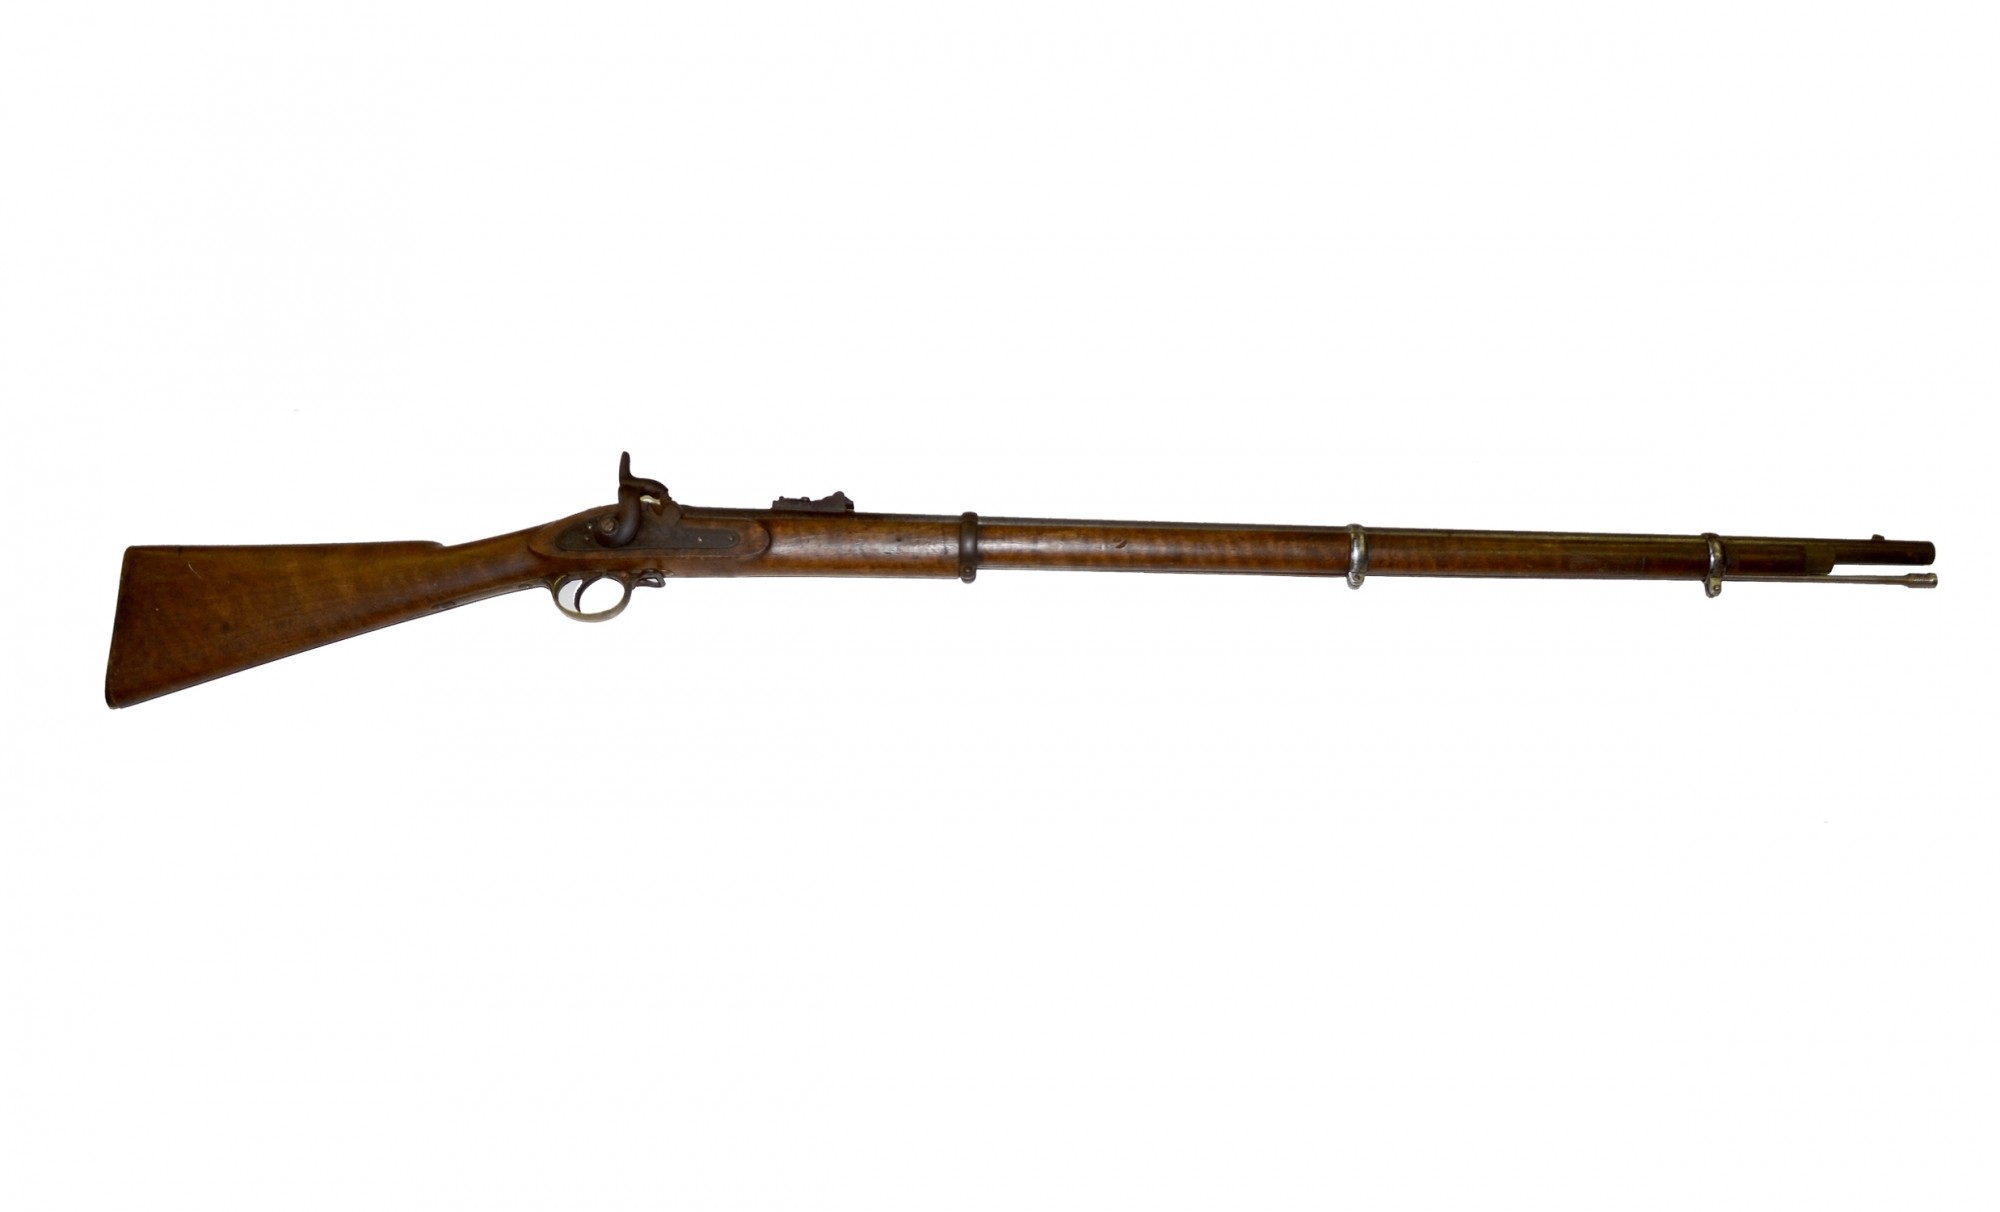 'TOWER-MARKED' BRITISH PATTERN 1853 ENFIELD PERCUSSION MUSKET